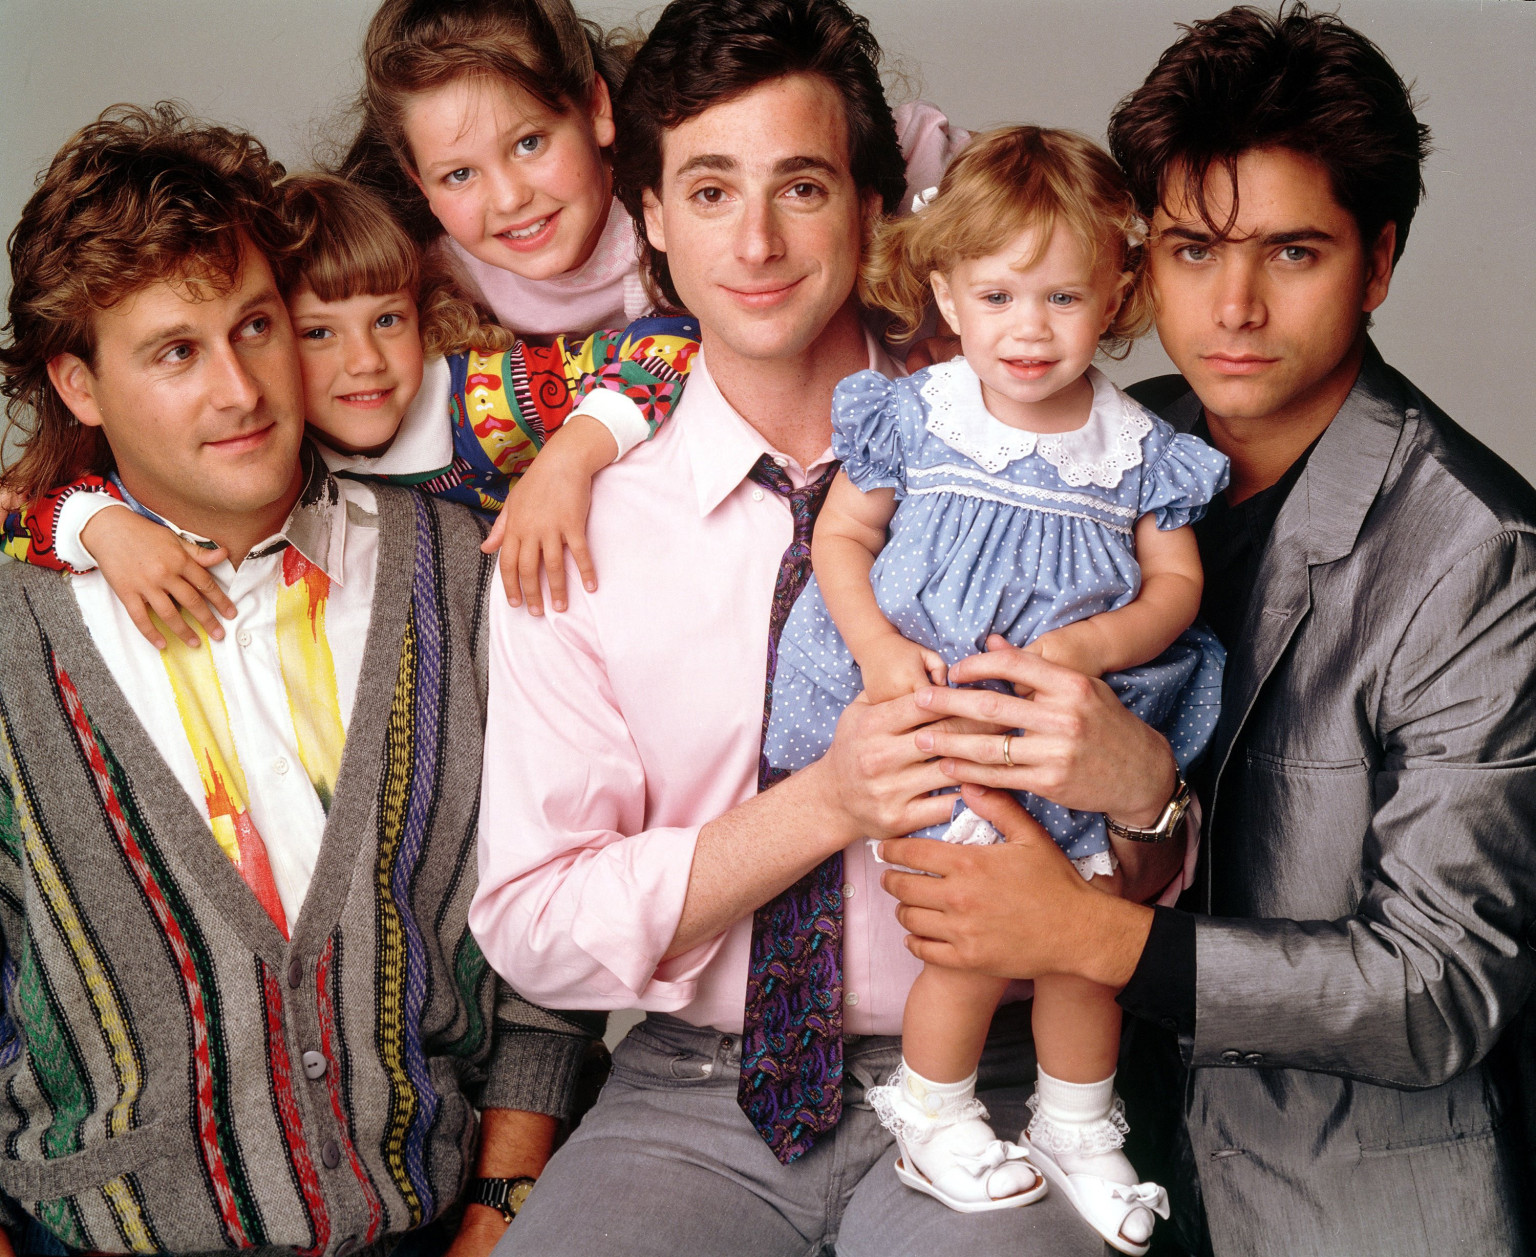 'Full House' Reunion Show 'Fuller House' Reportedly Coming ...